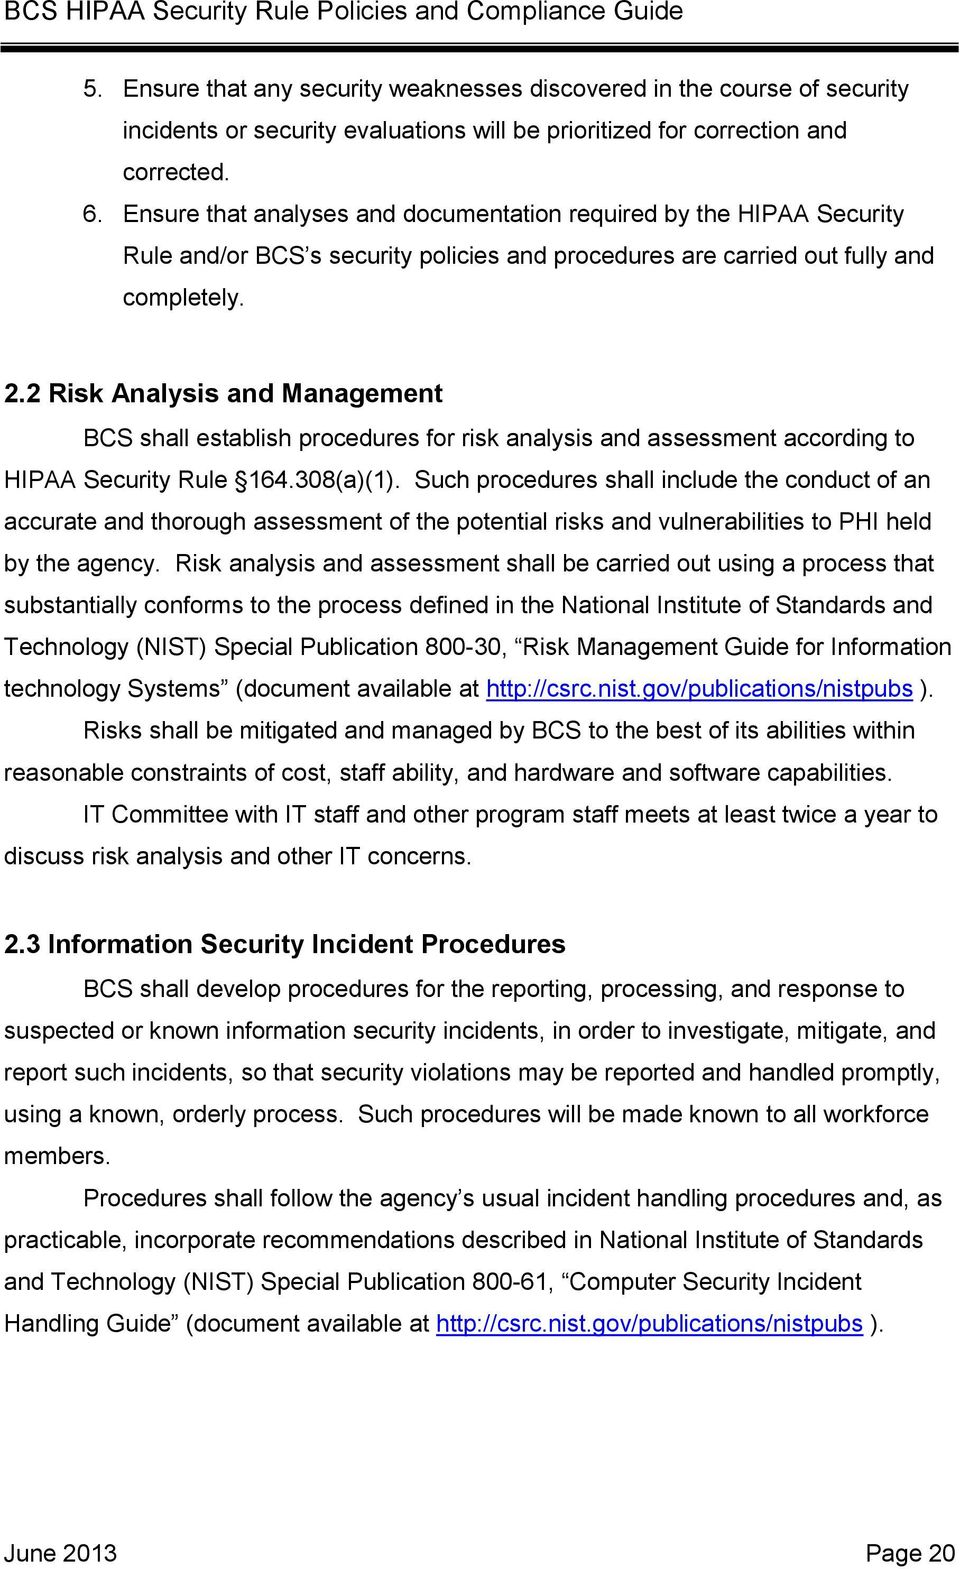 2 Risk Analysis and Management BCS shall establish procedures for risk analysis and assessment according to HIPAA Security Rule 164.308(a)(1).